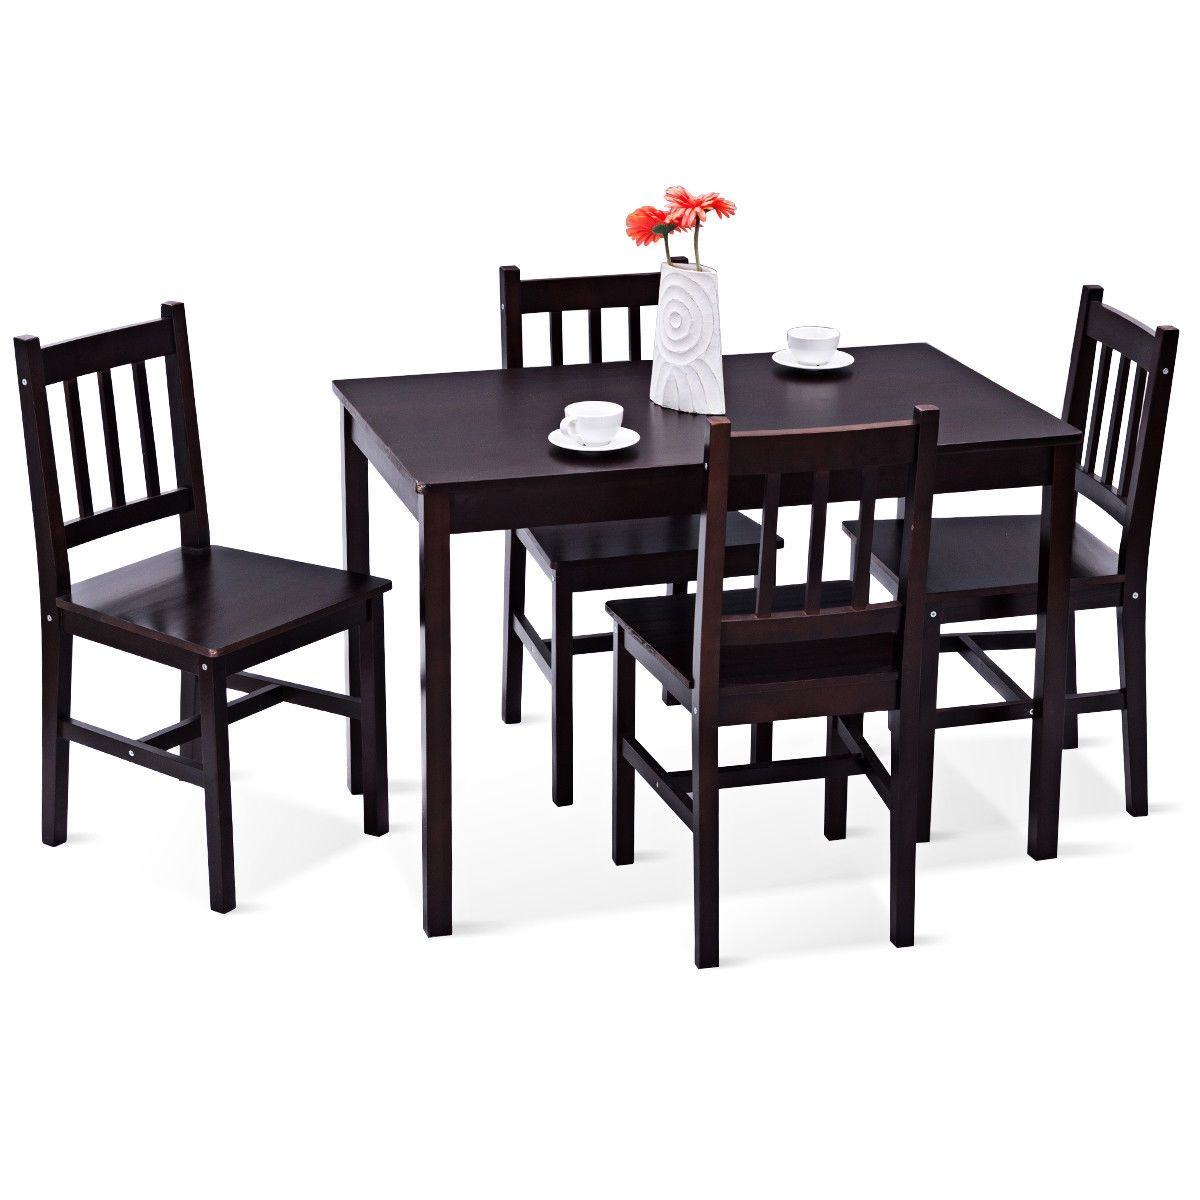 5 Pcs Wood Dining 4 Chairs Table Set Black Dining Furniture